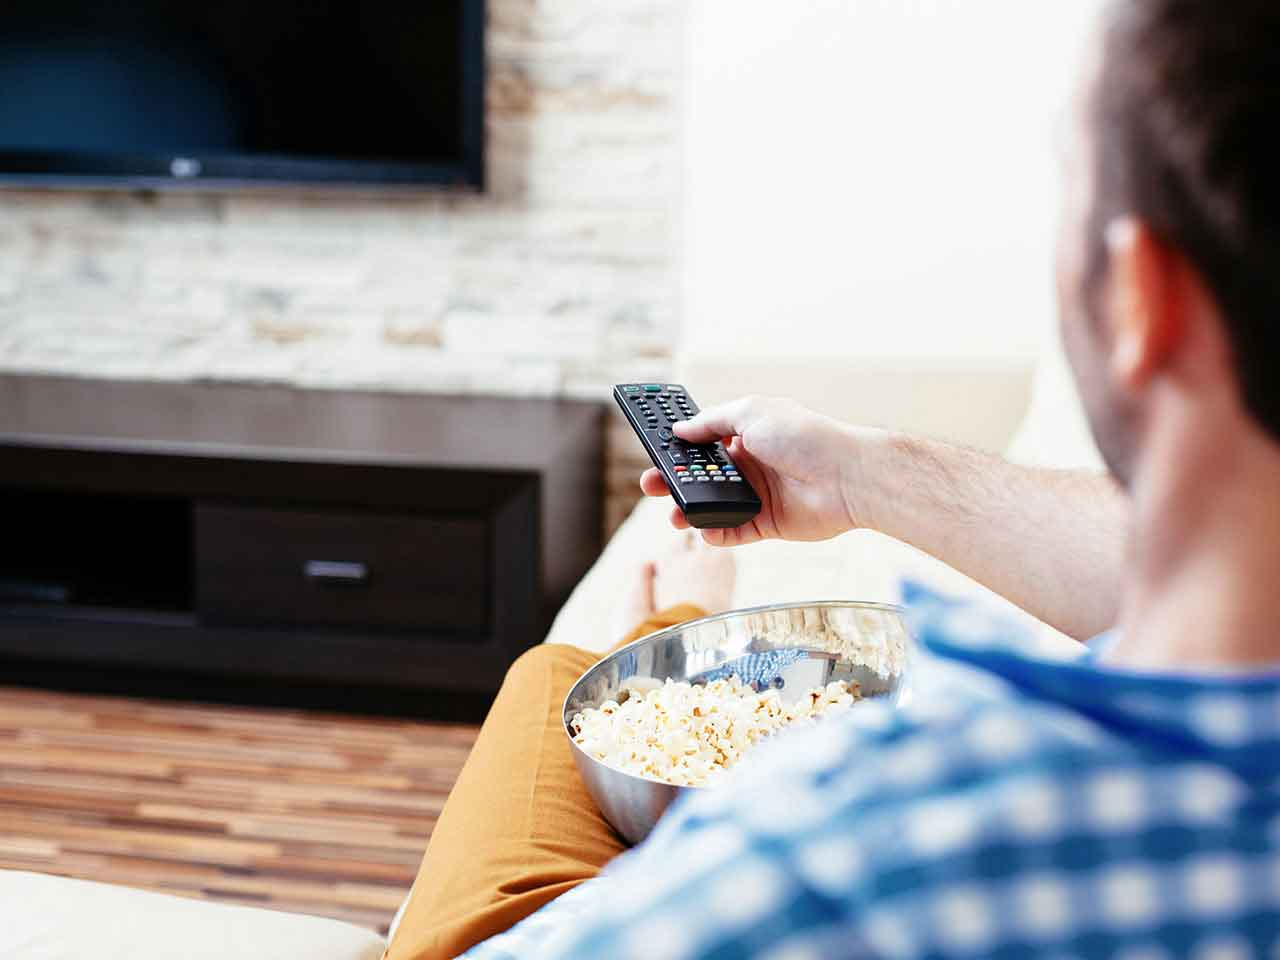 Man watching TV eating popcorn